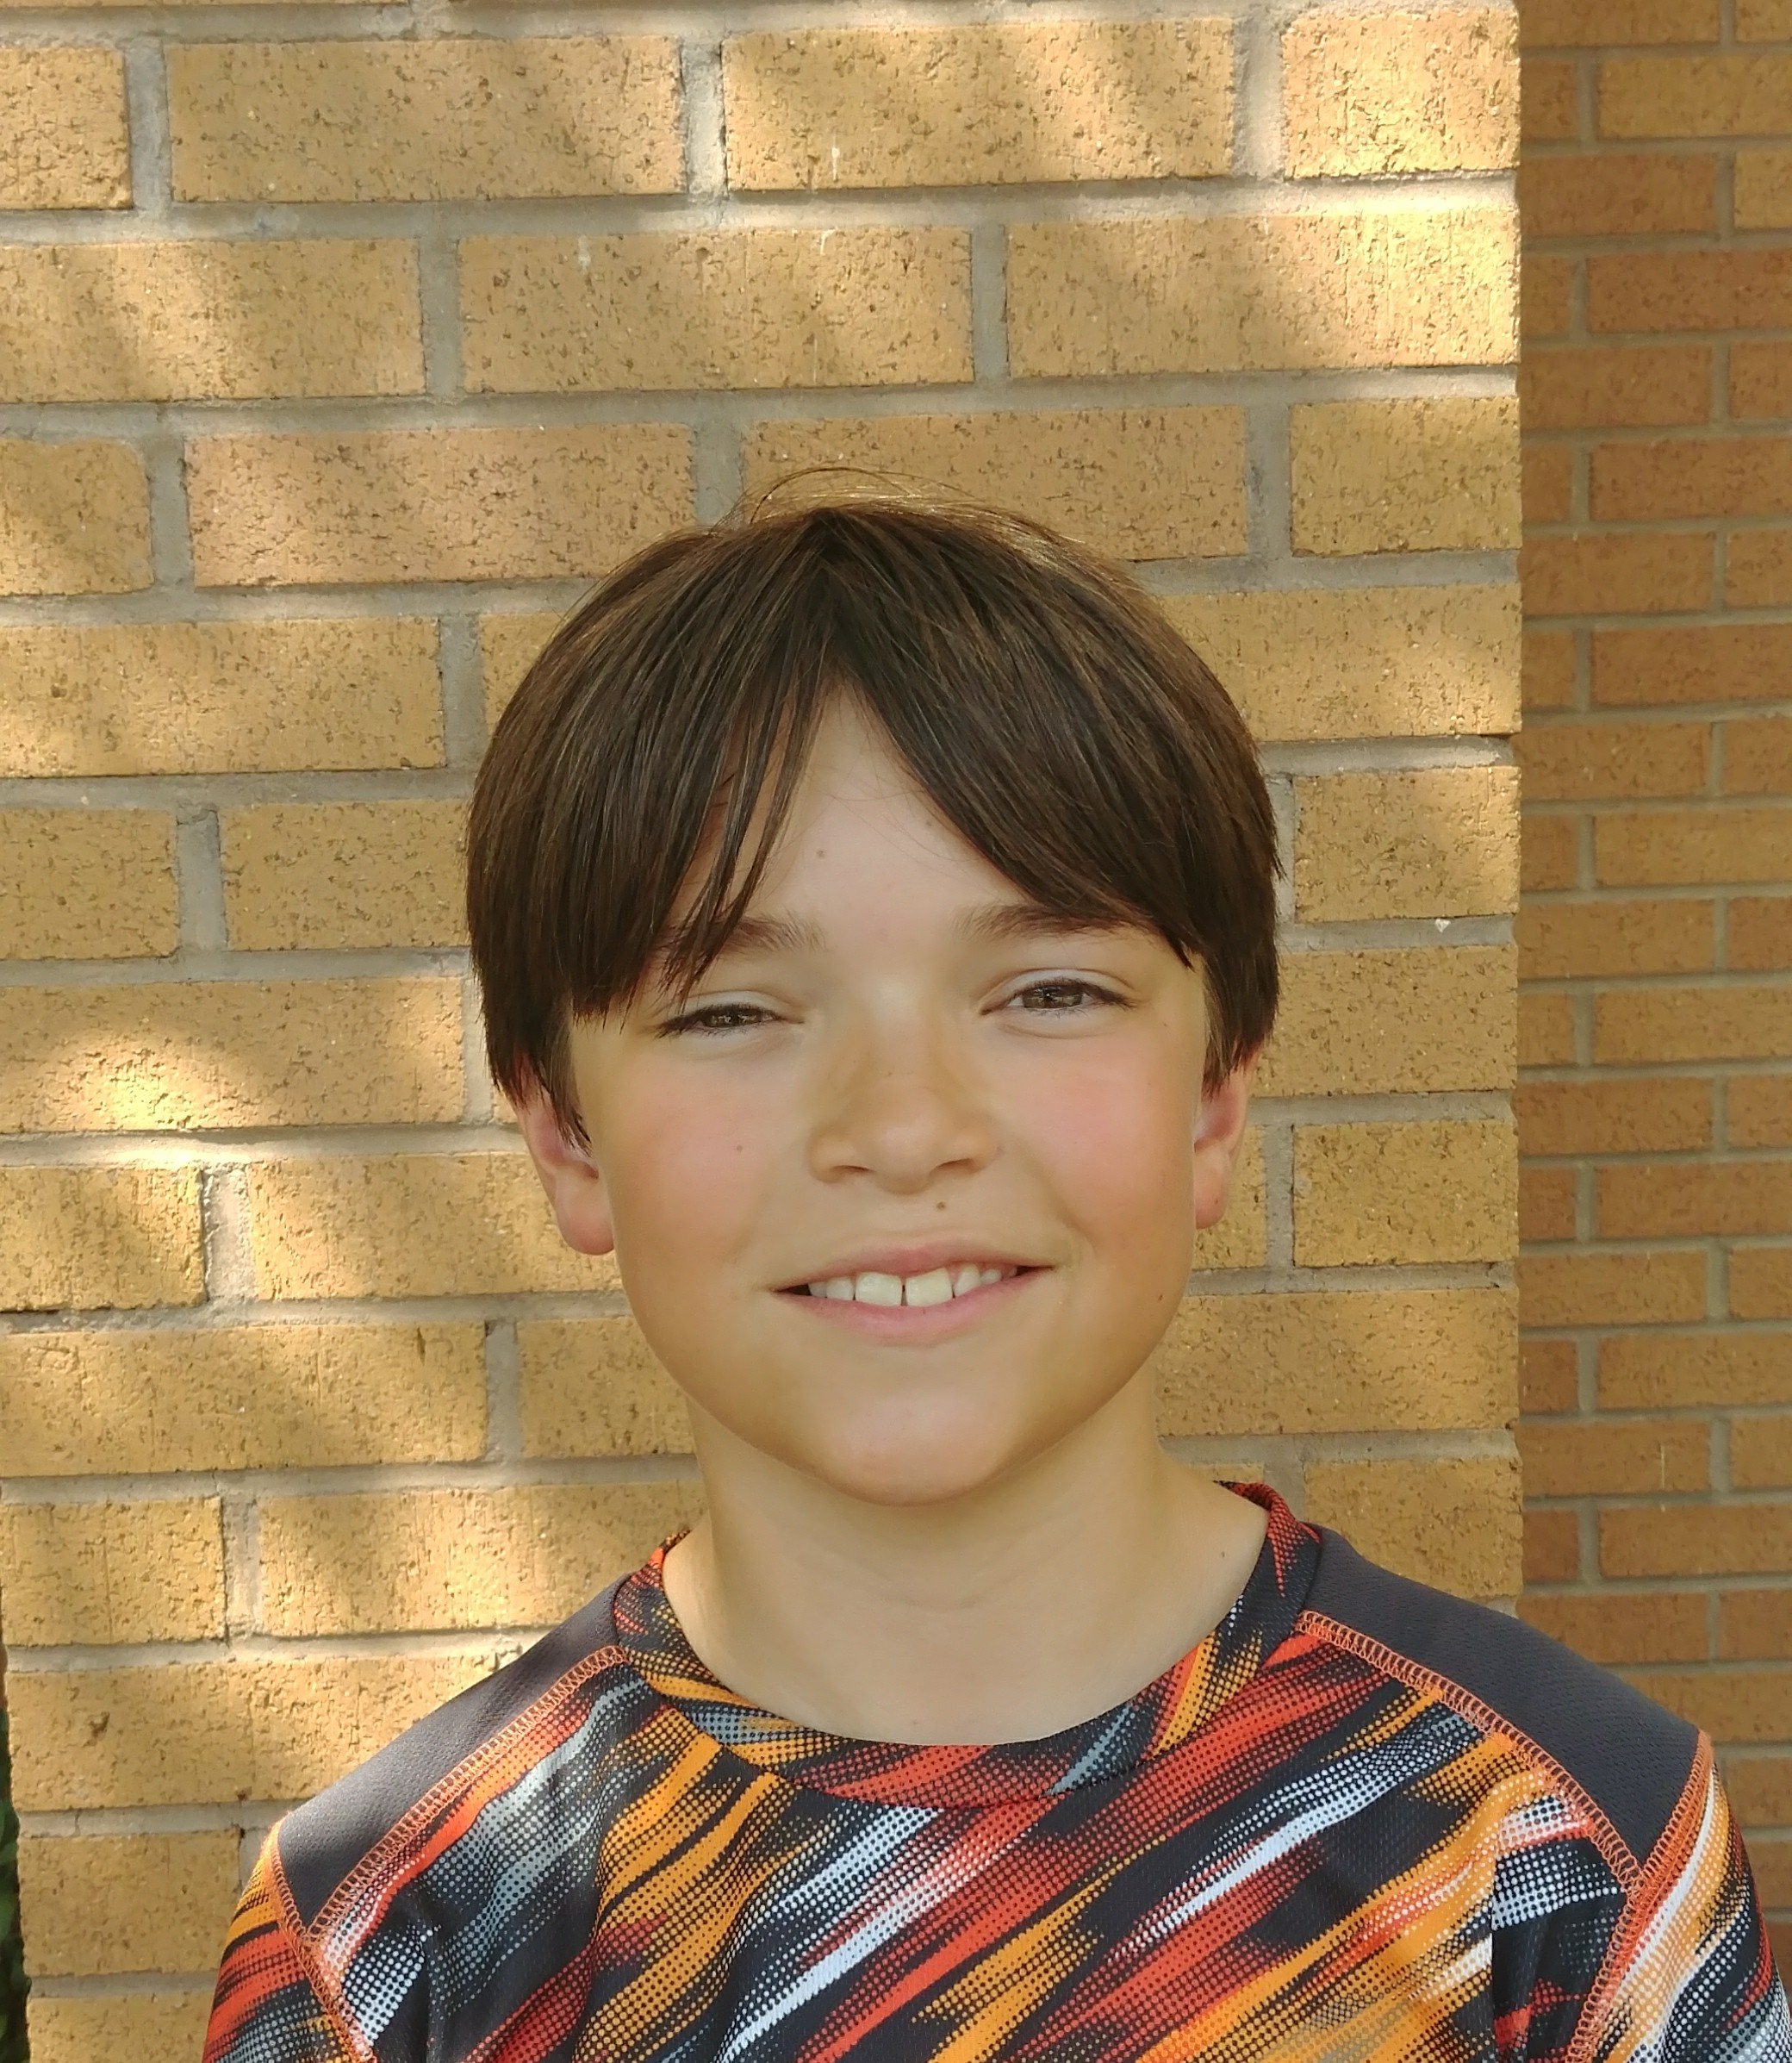 I am looking forward to going to Myrtle Beach because I am going with my cousins.  Ian  Age 11